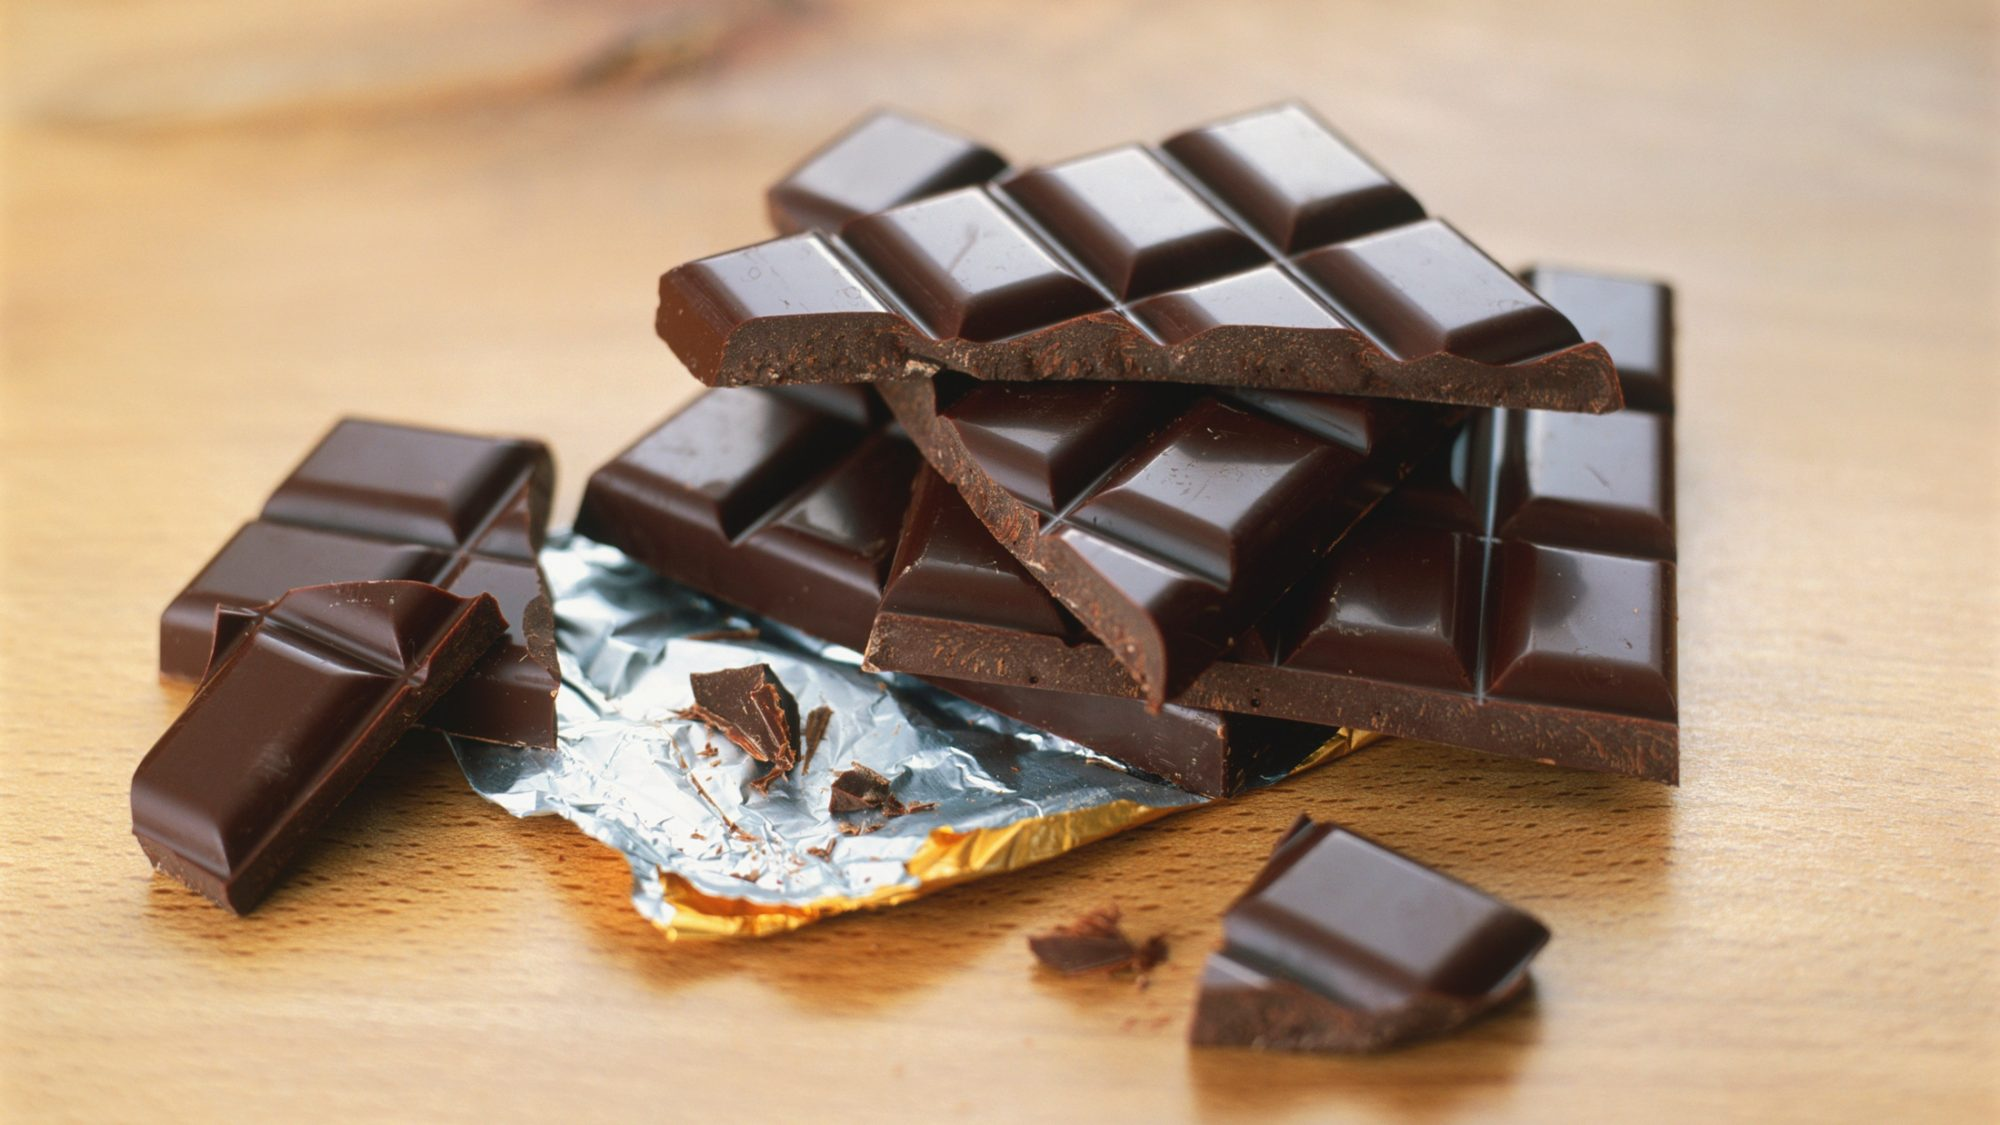 Dark Chocolate Makes People Happier